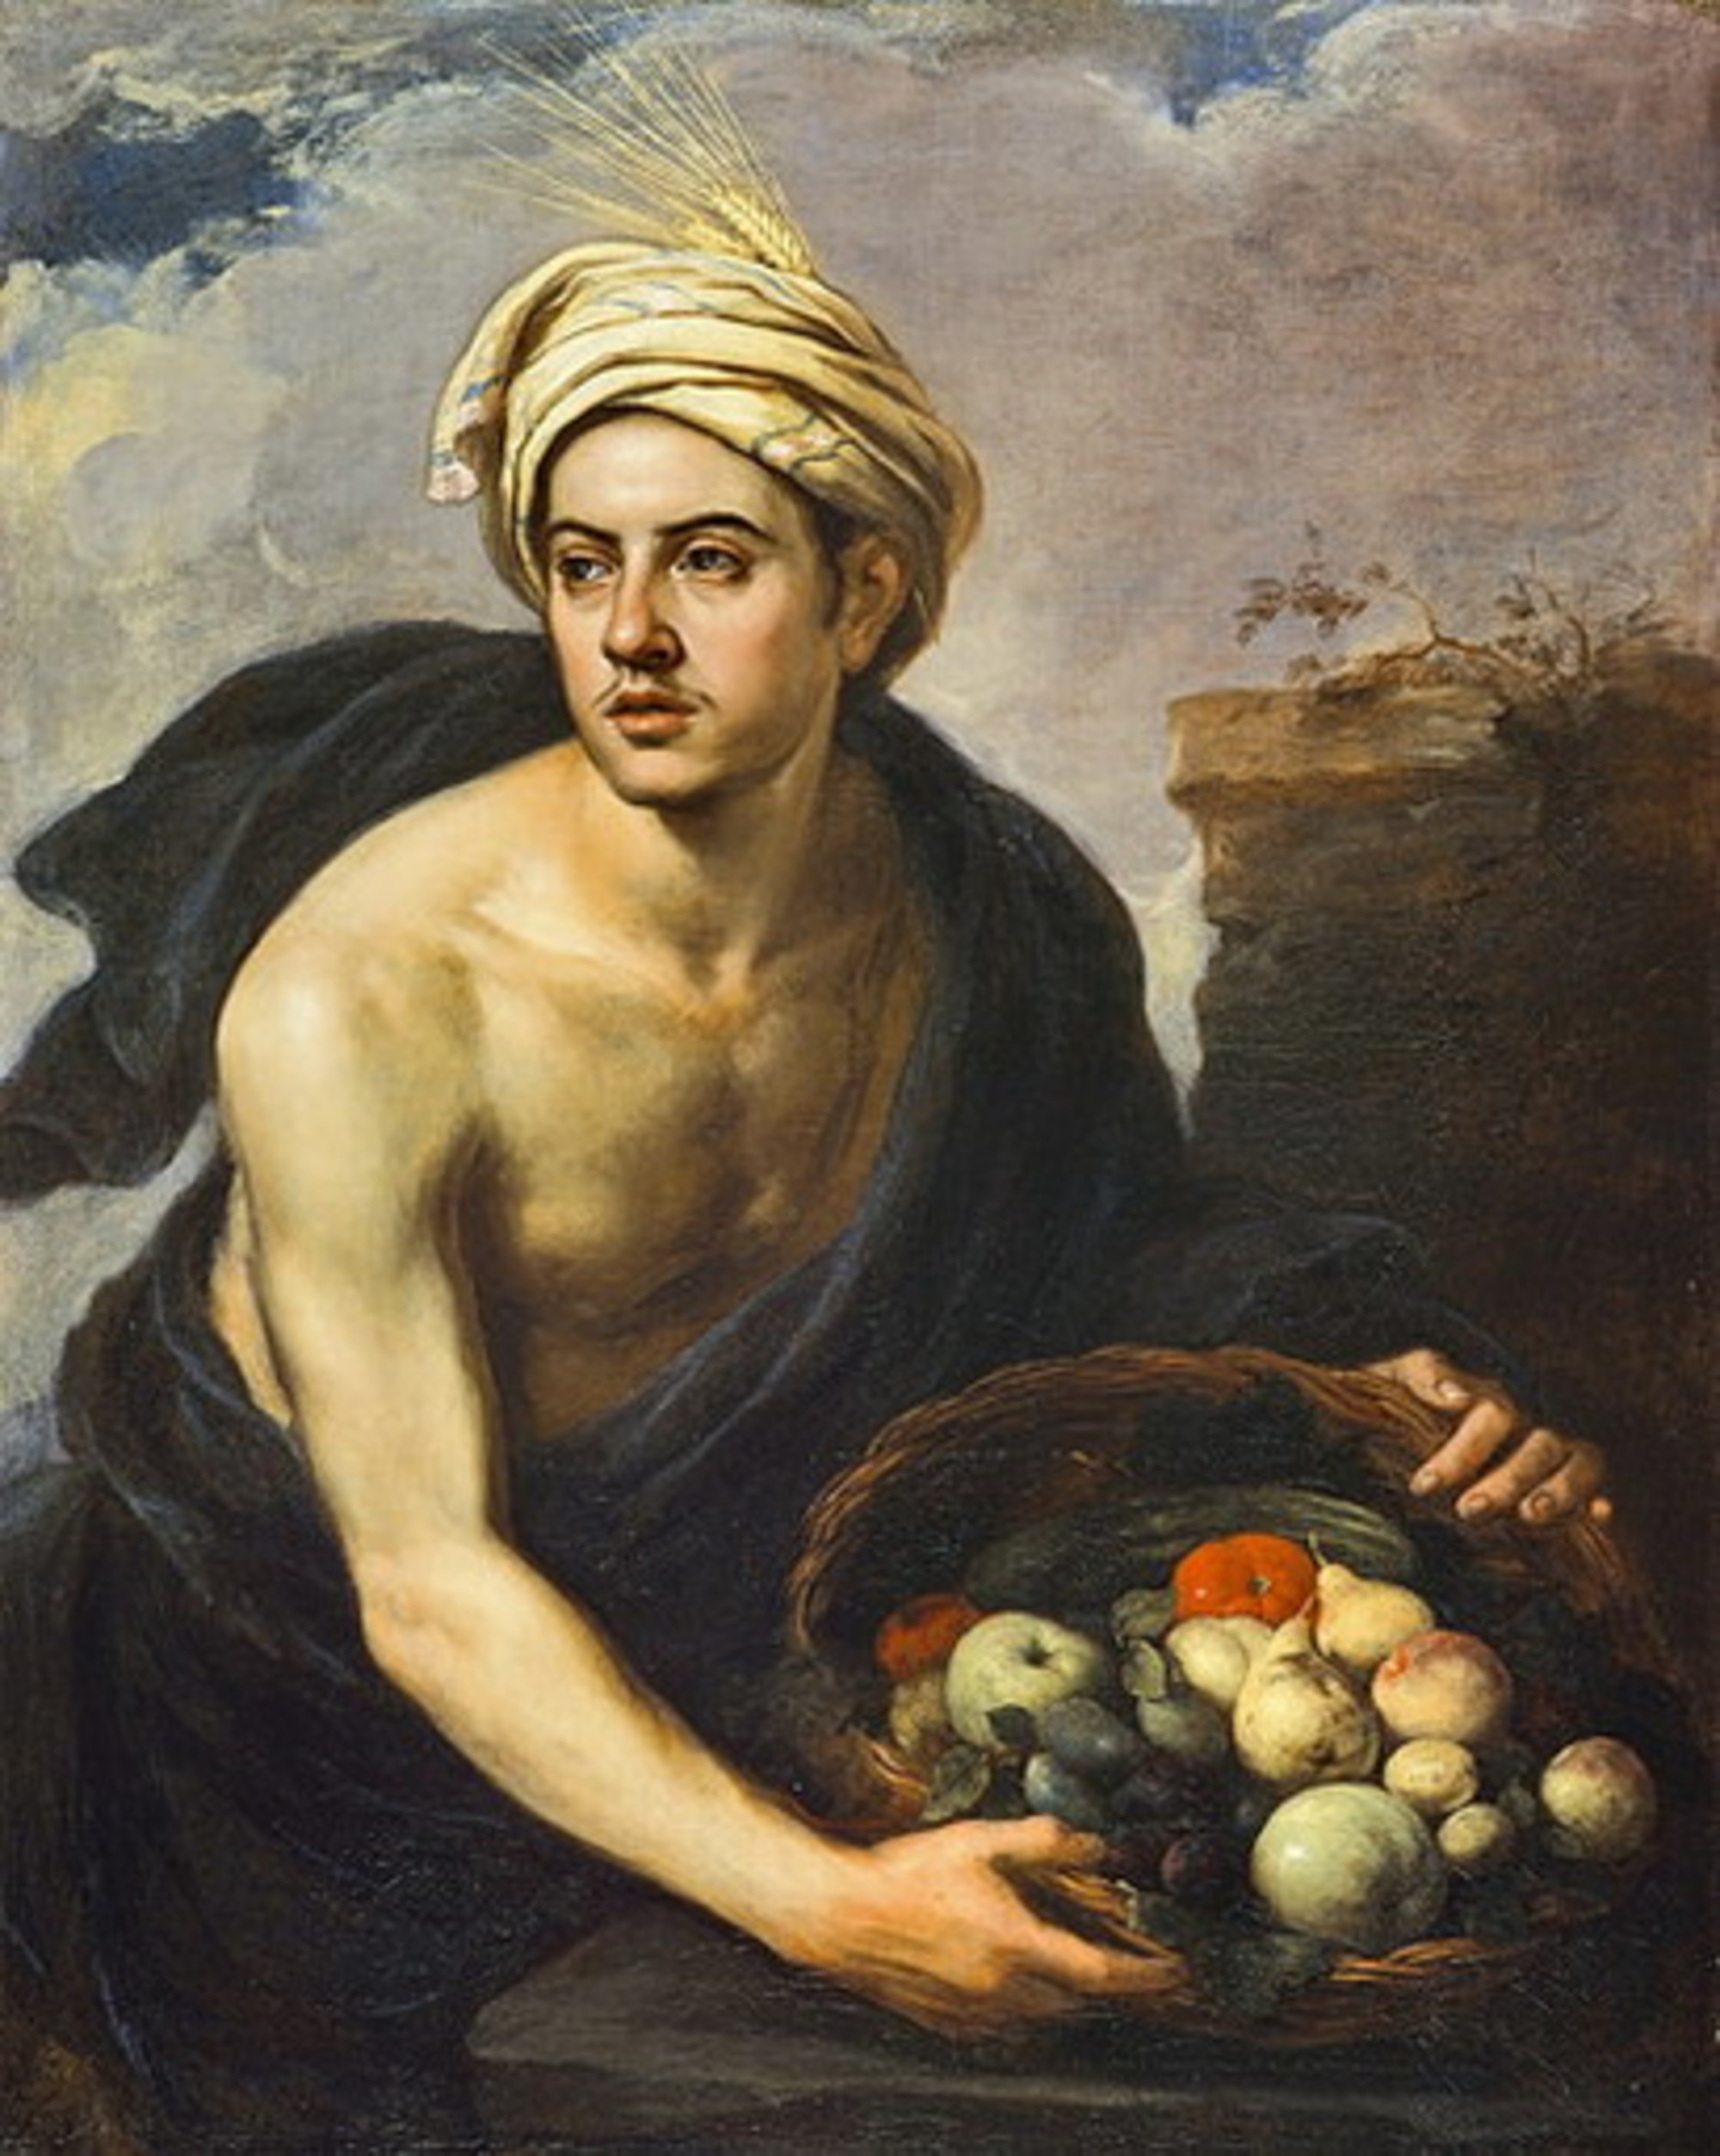 A-Young-Man-with-a-Basket-of-Fruit-by-Bartolome-Esteban-Murillo-002.jpg